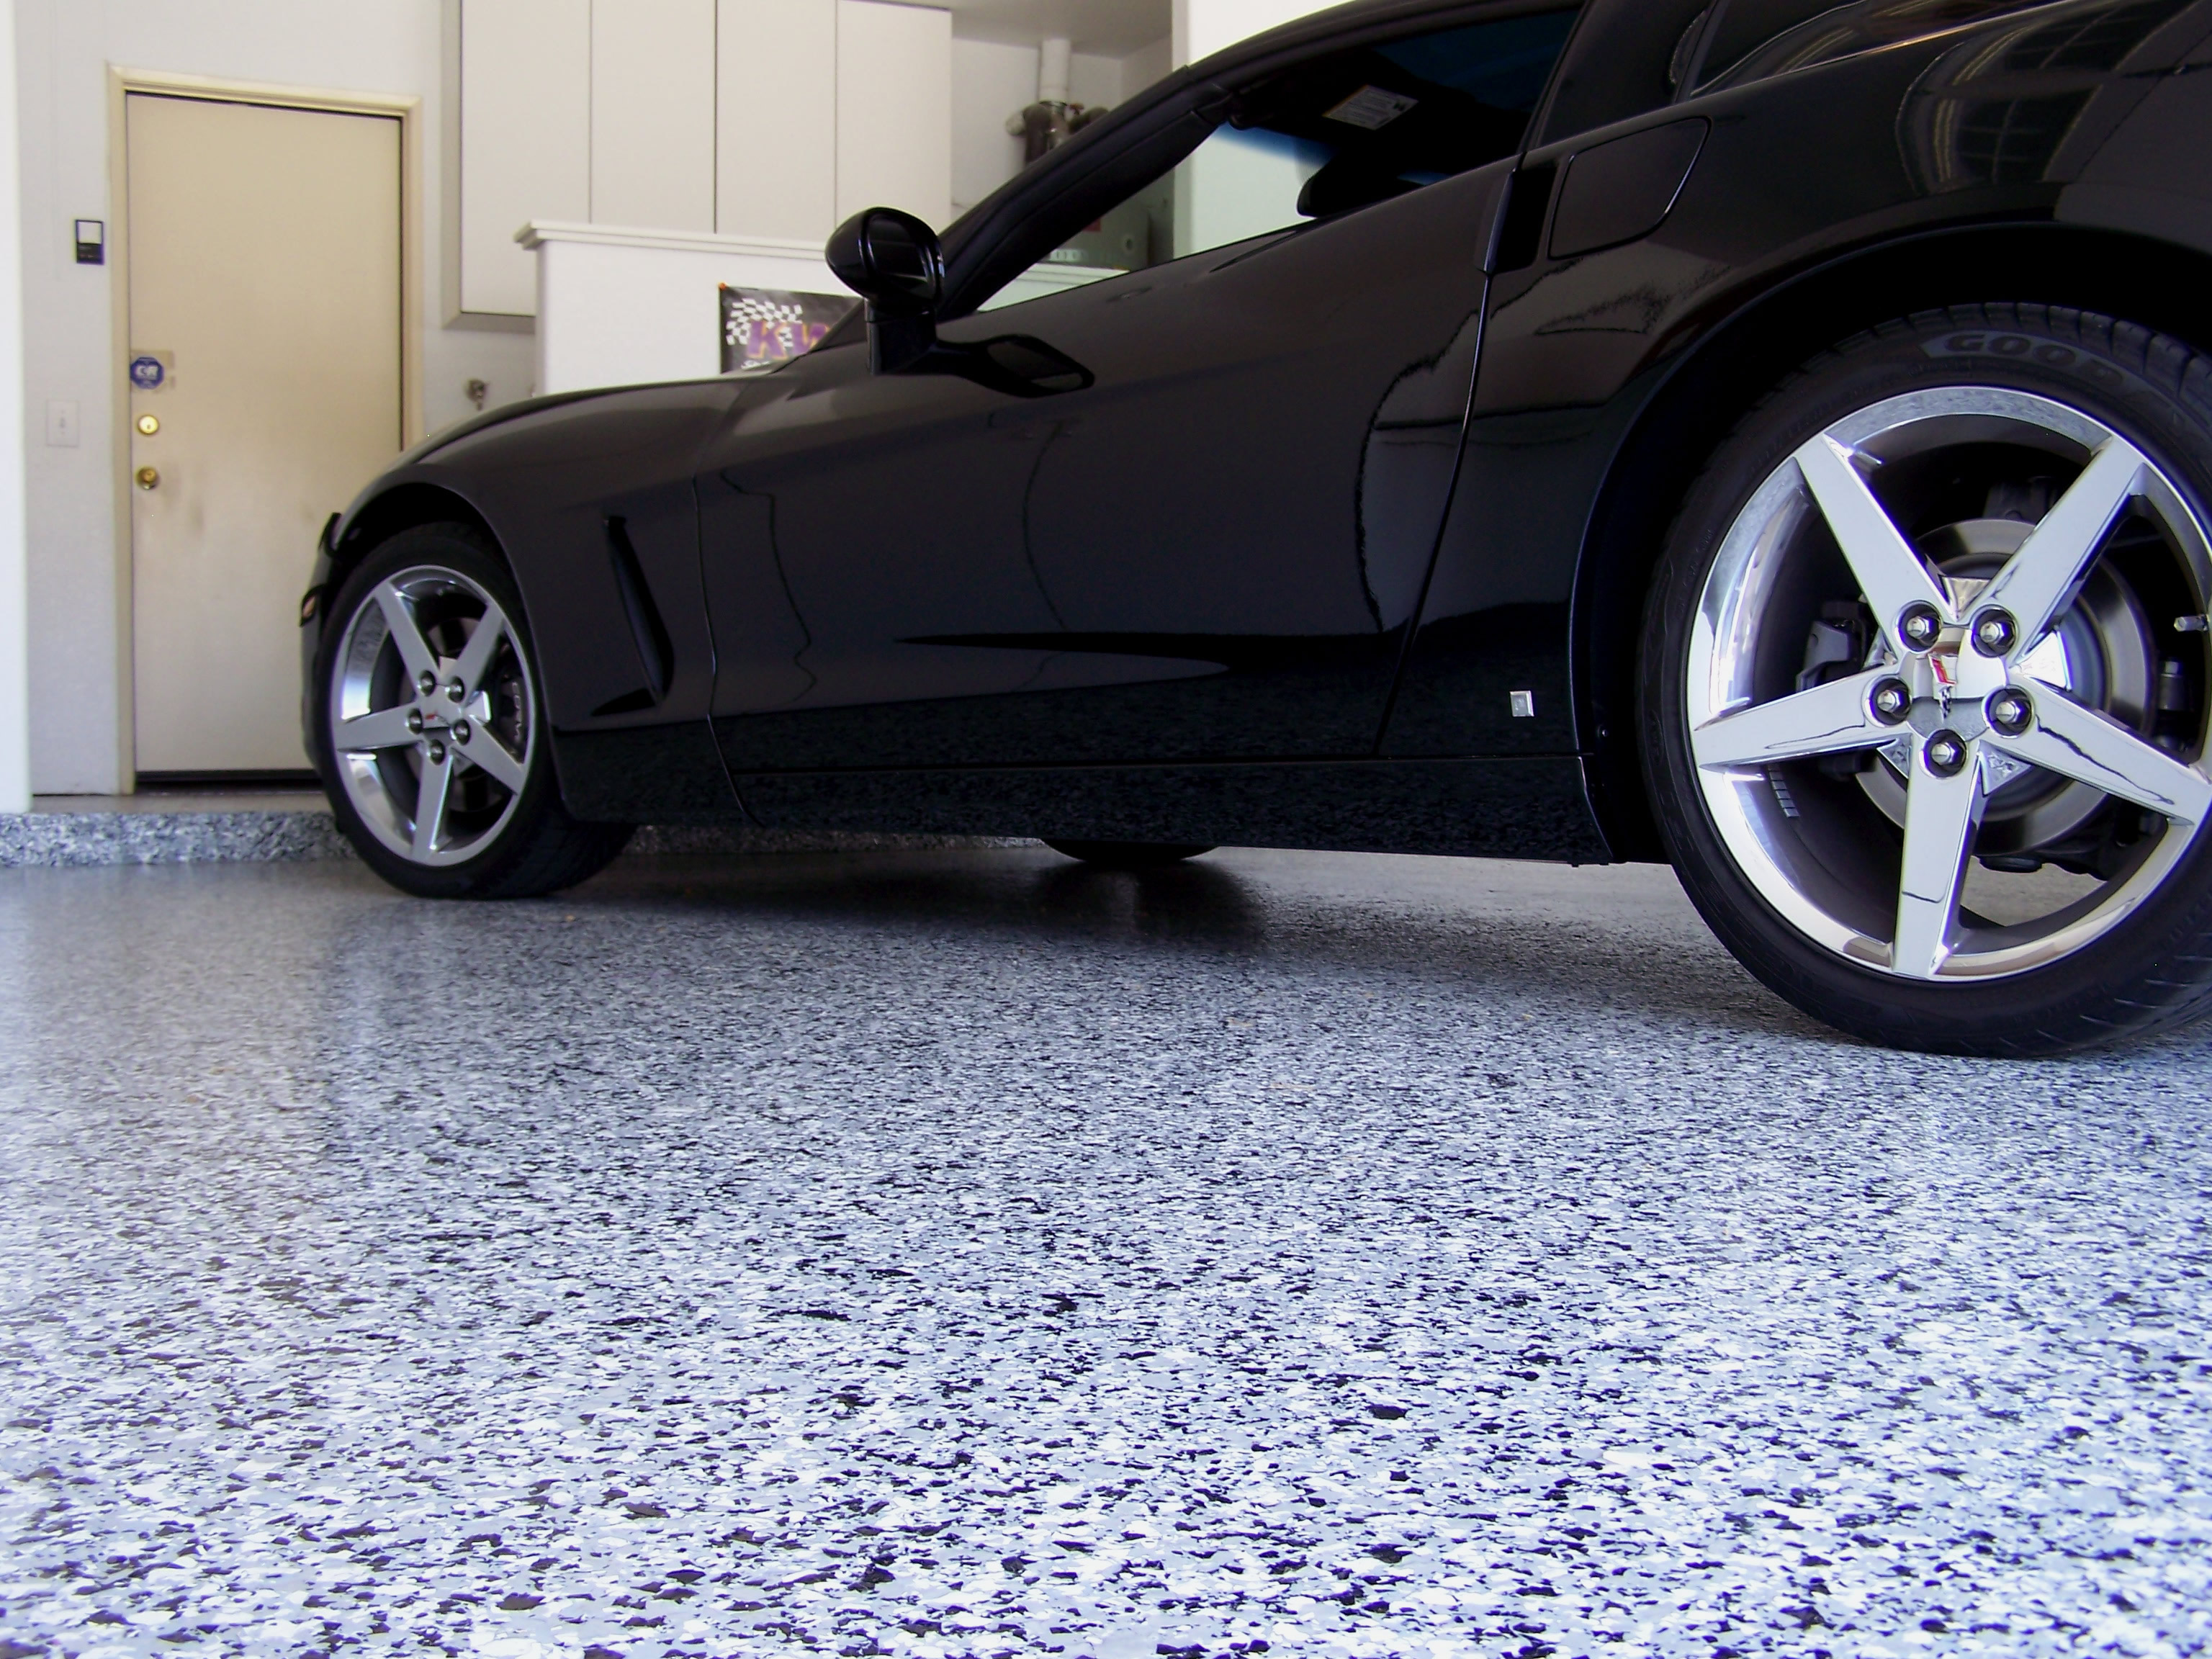 coatings dallas coating granite paint garage floor lucas dfw epoxy floors